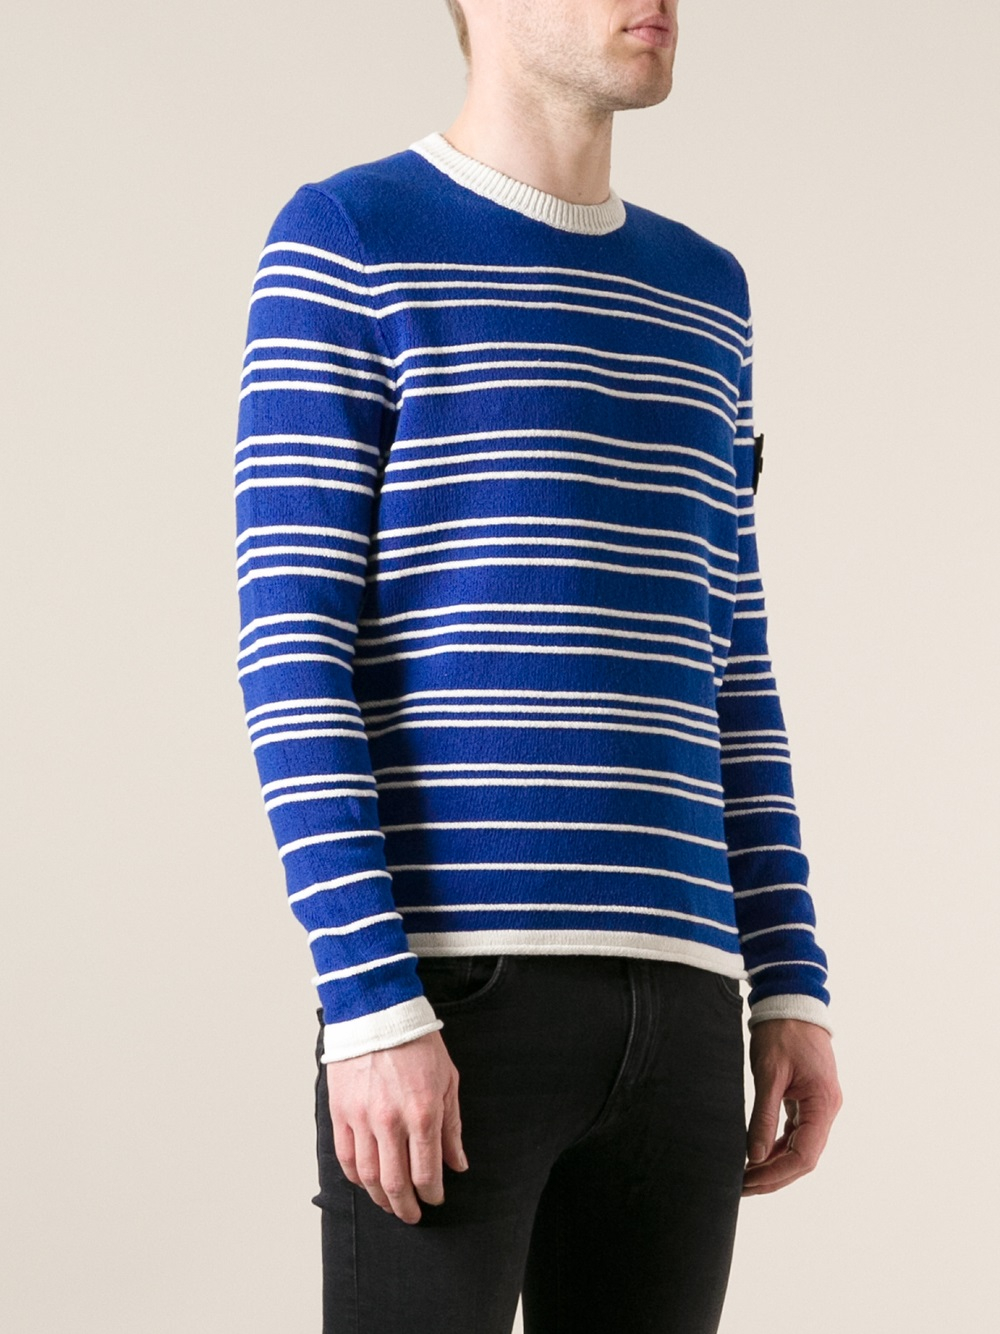 Stone island Striped Sweater in Blue for Men | Lyst